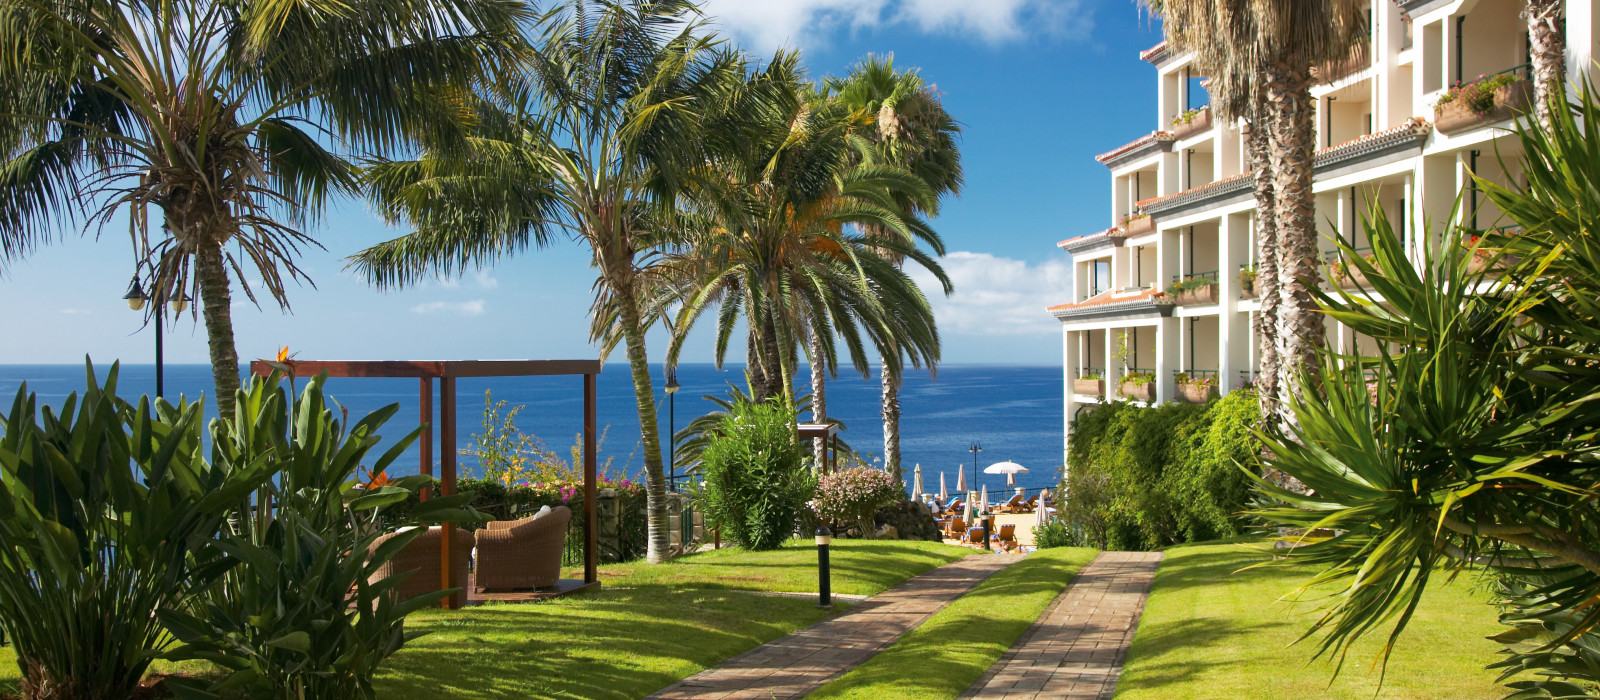 Hotel The Cliff Bay Portugal